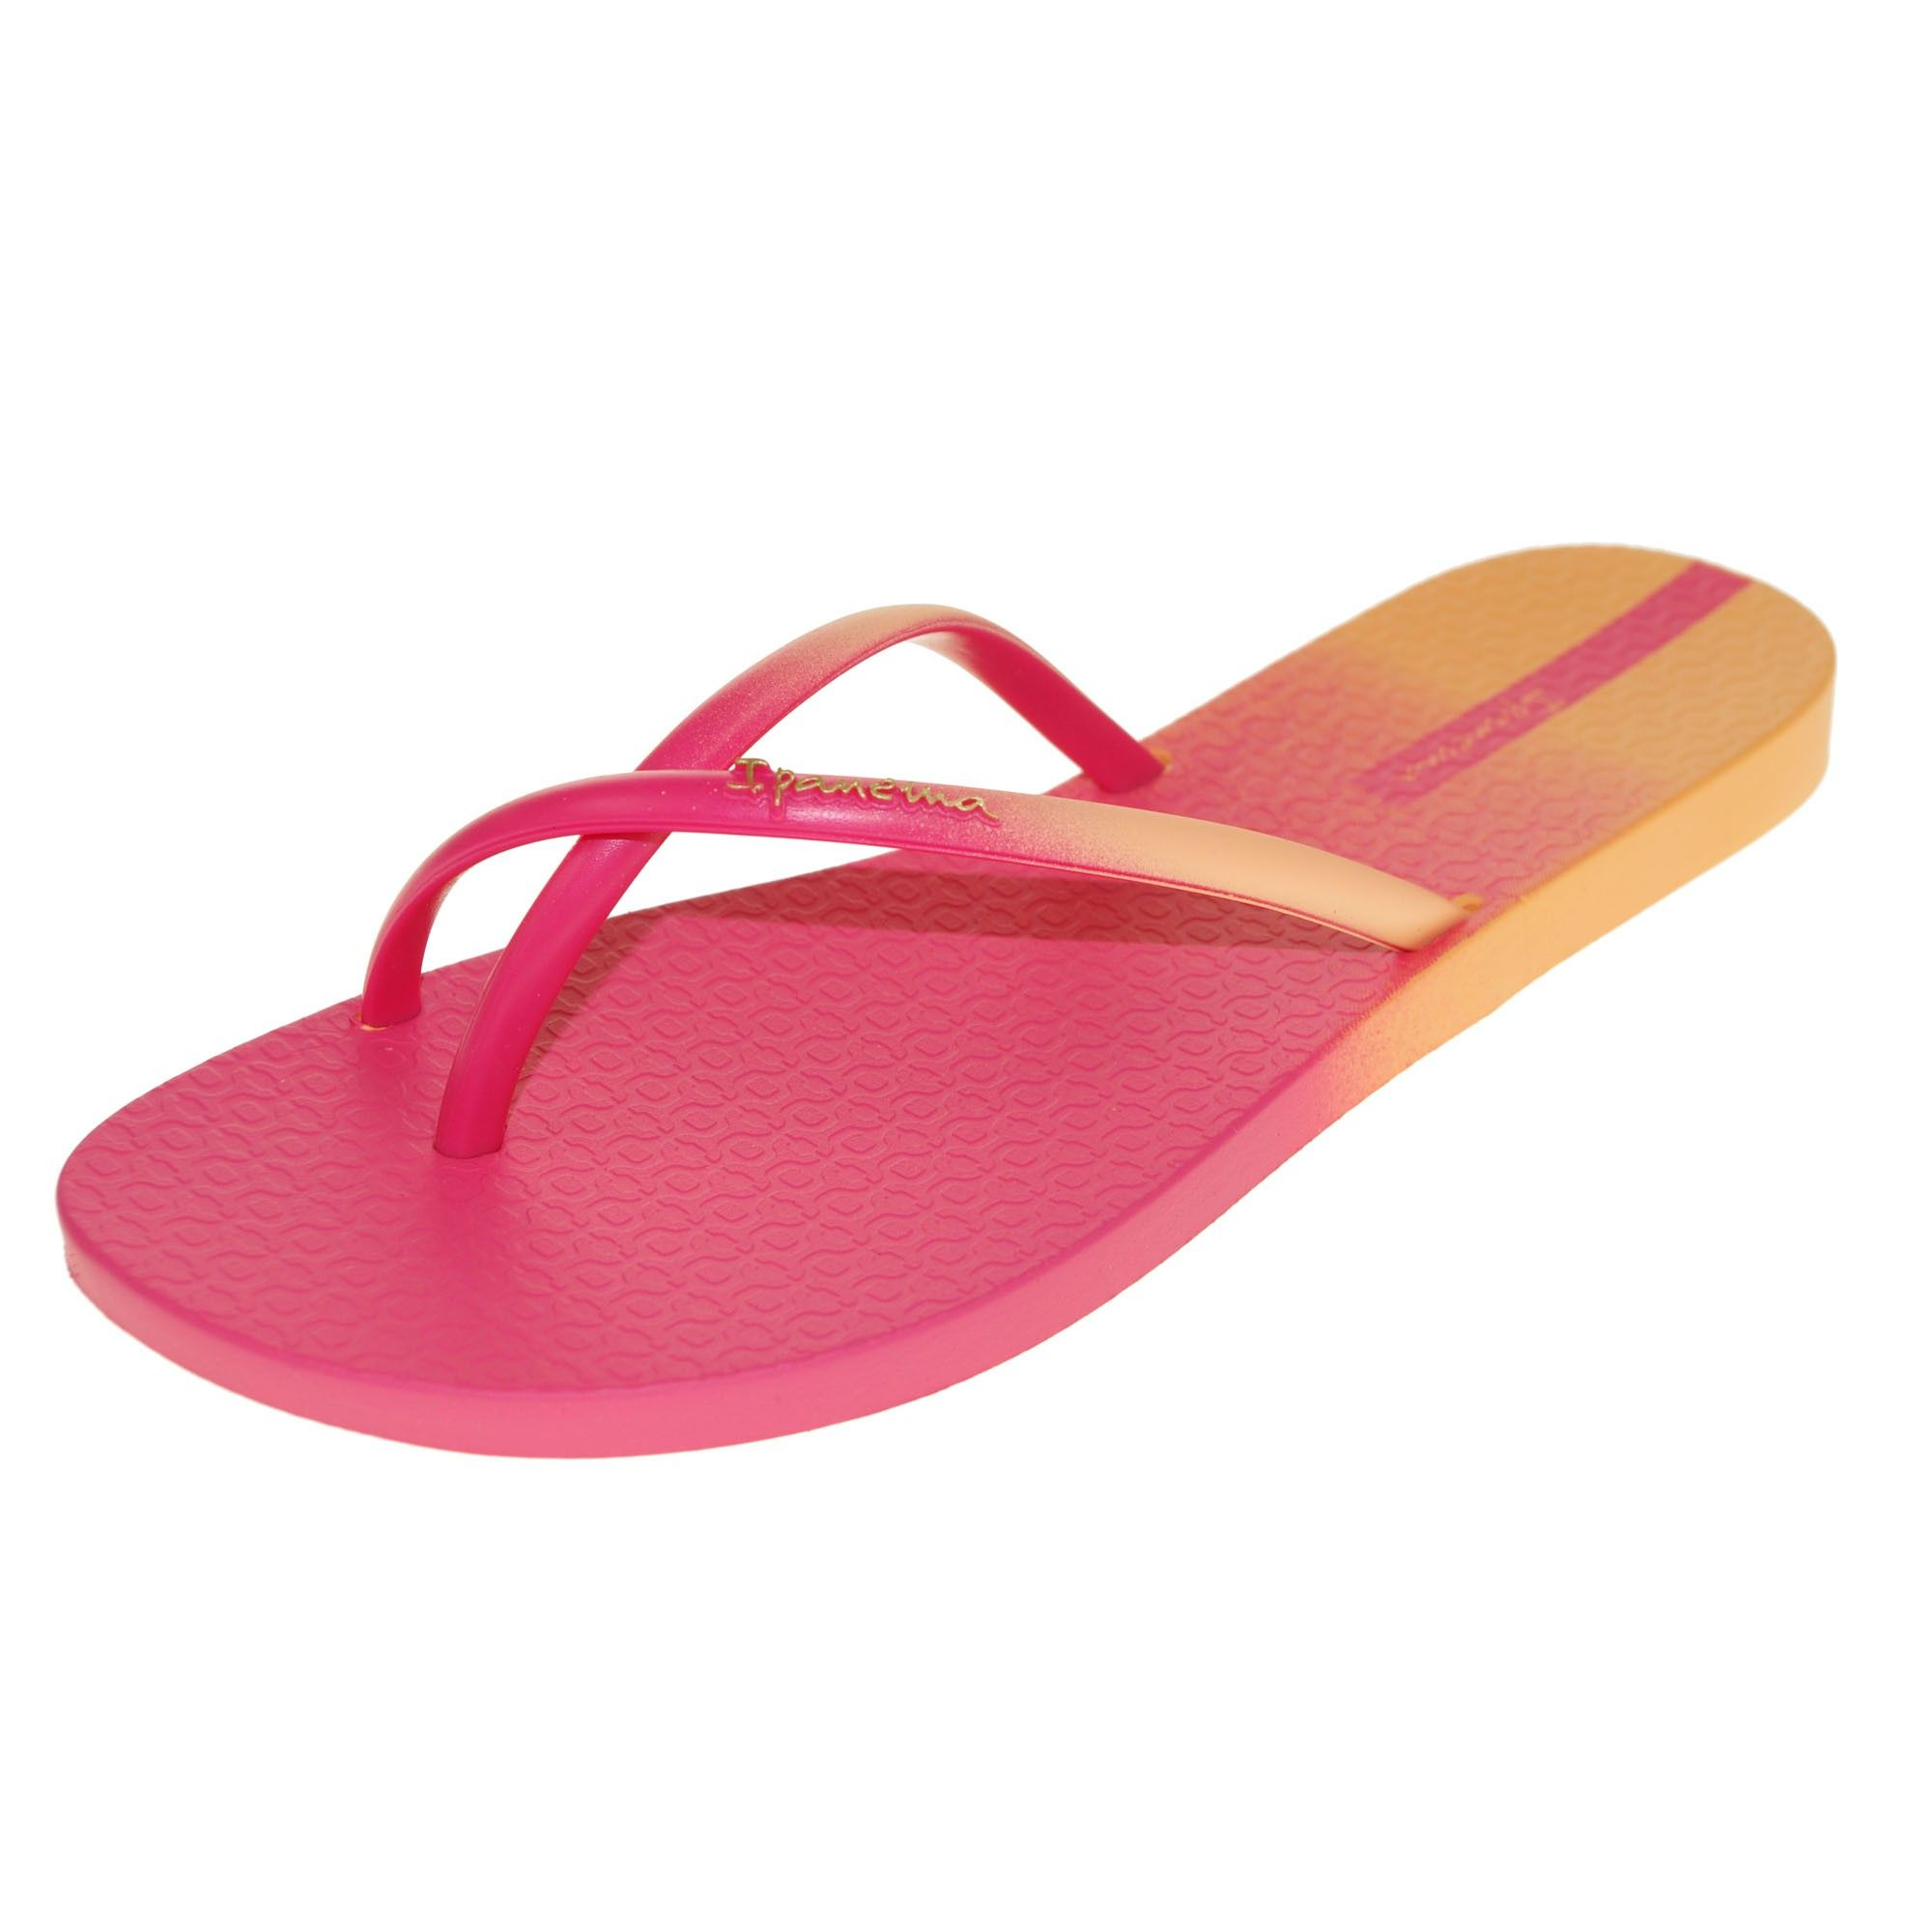 b652538a IPANEMA Sandals - FIT SUMMER FEM 81564 - orange pink Wie immer bei ...